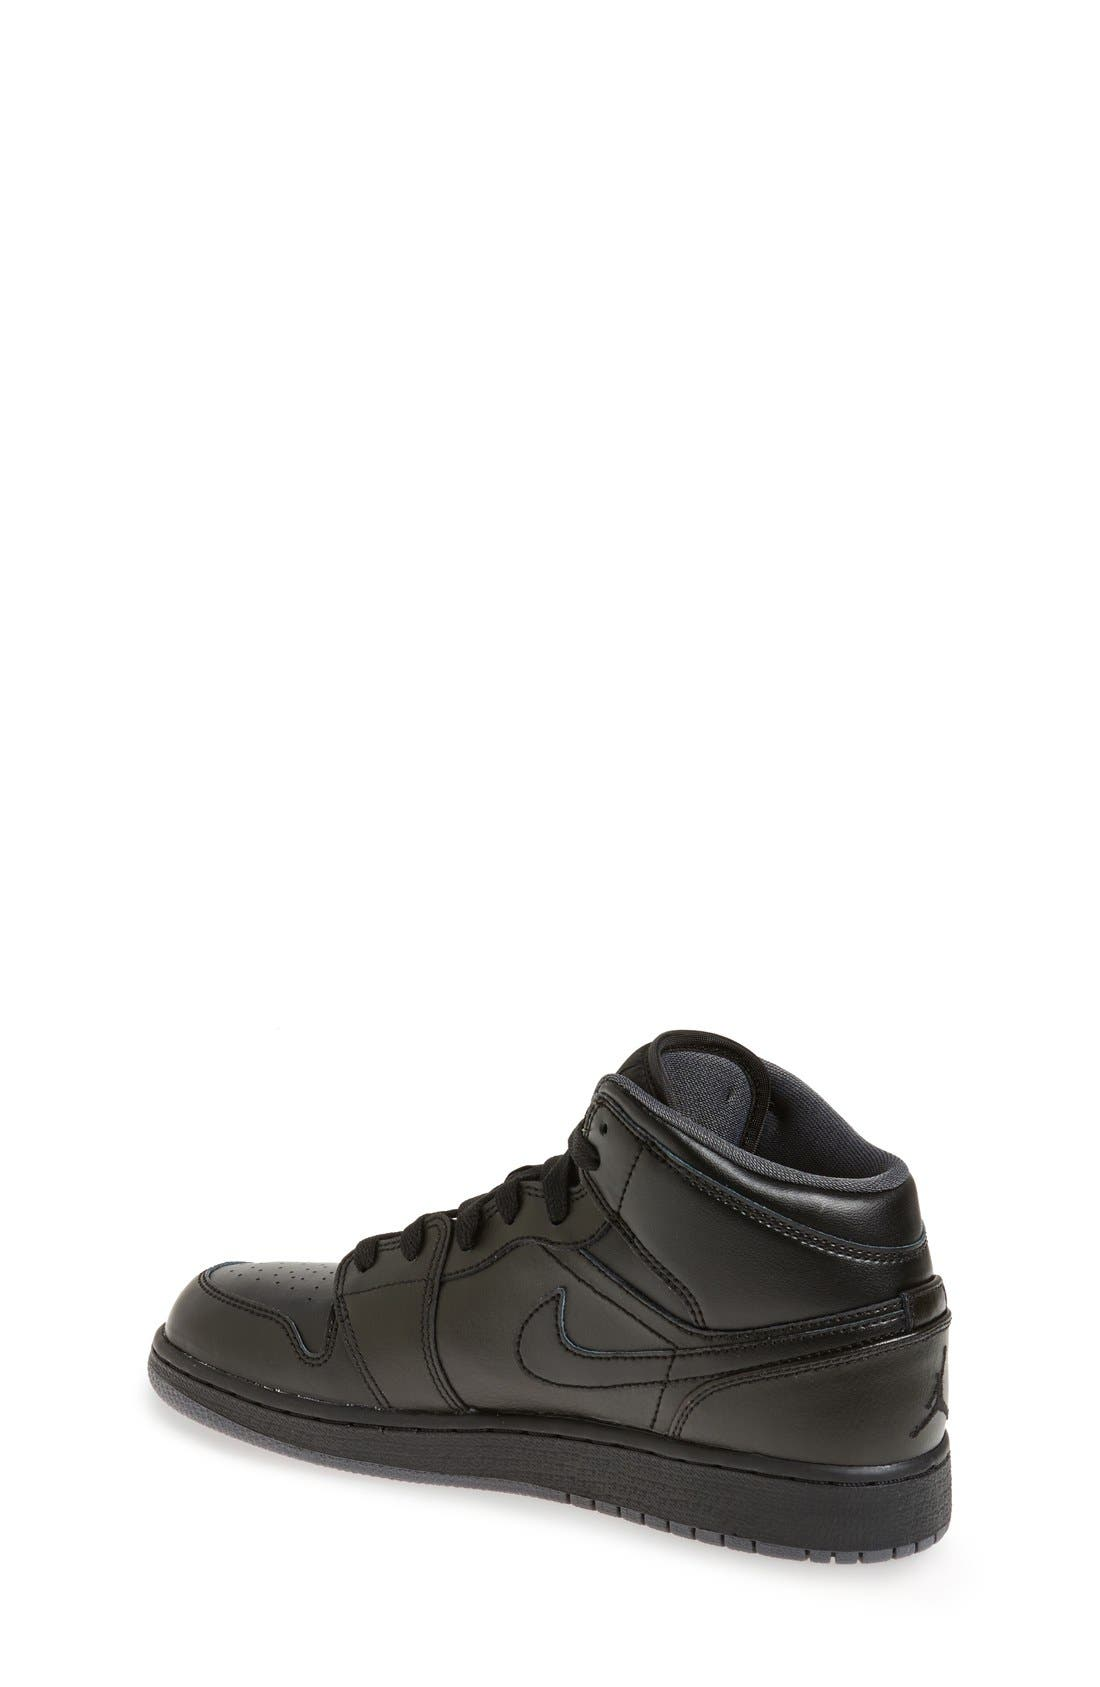 Nike 'Air Jordan 1 Mid' Sneaker,                             Alternate thumbnail 2, color,                             Black/ Black